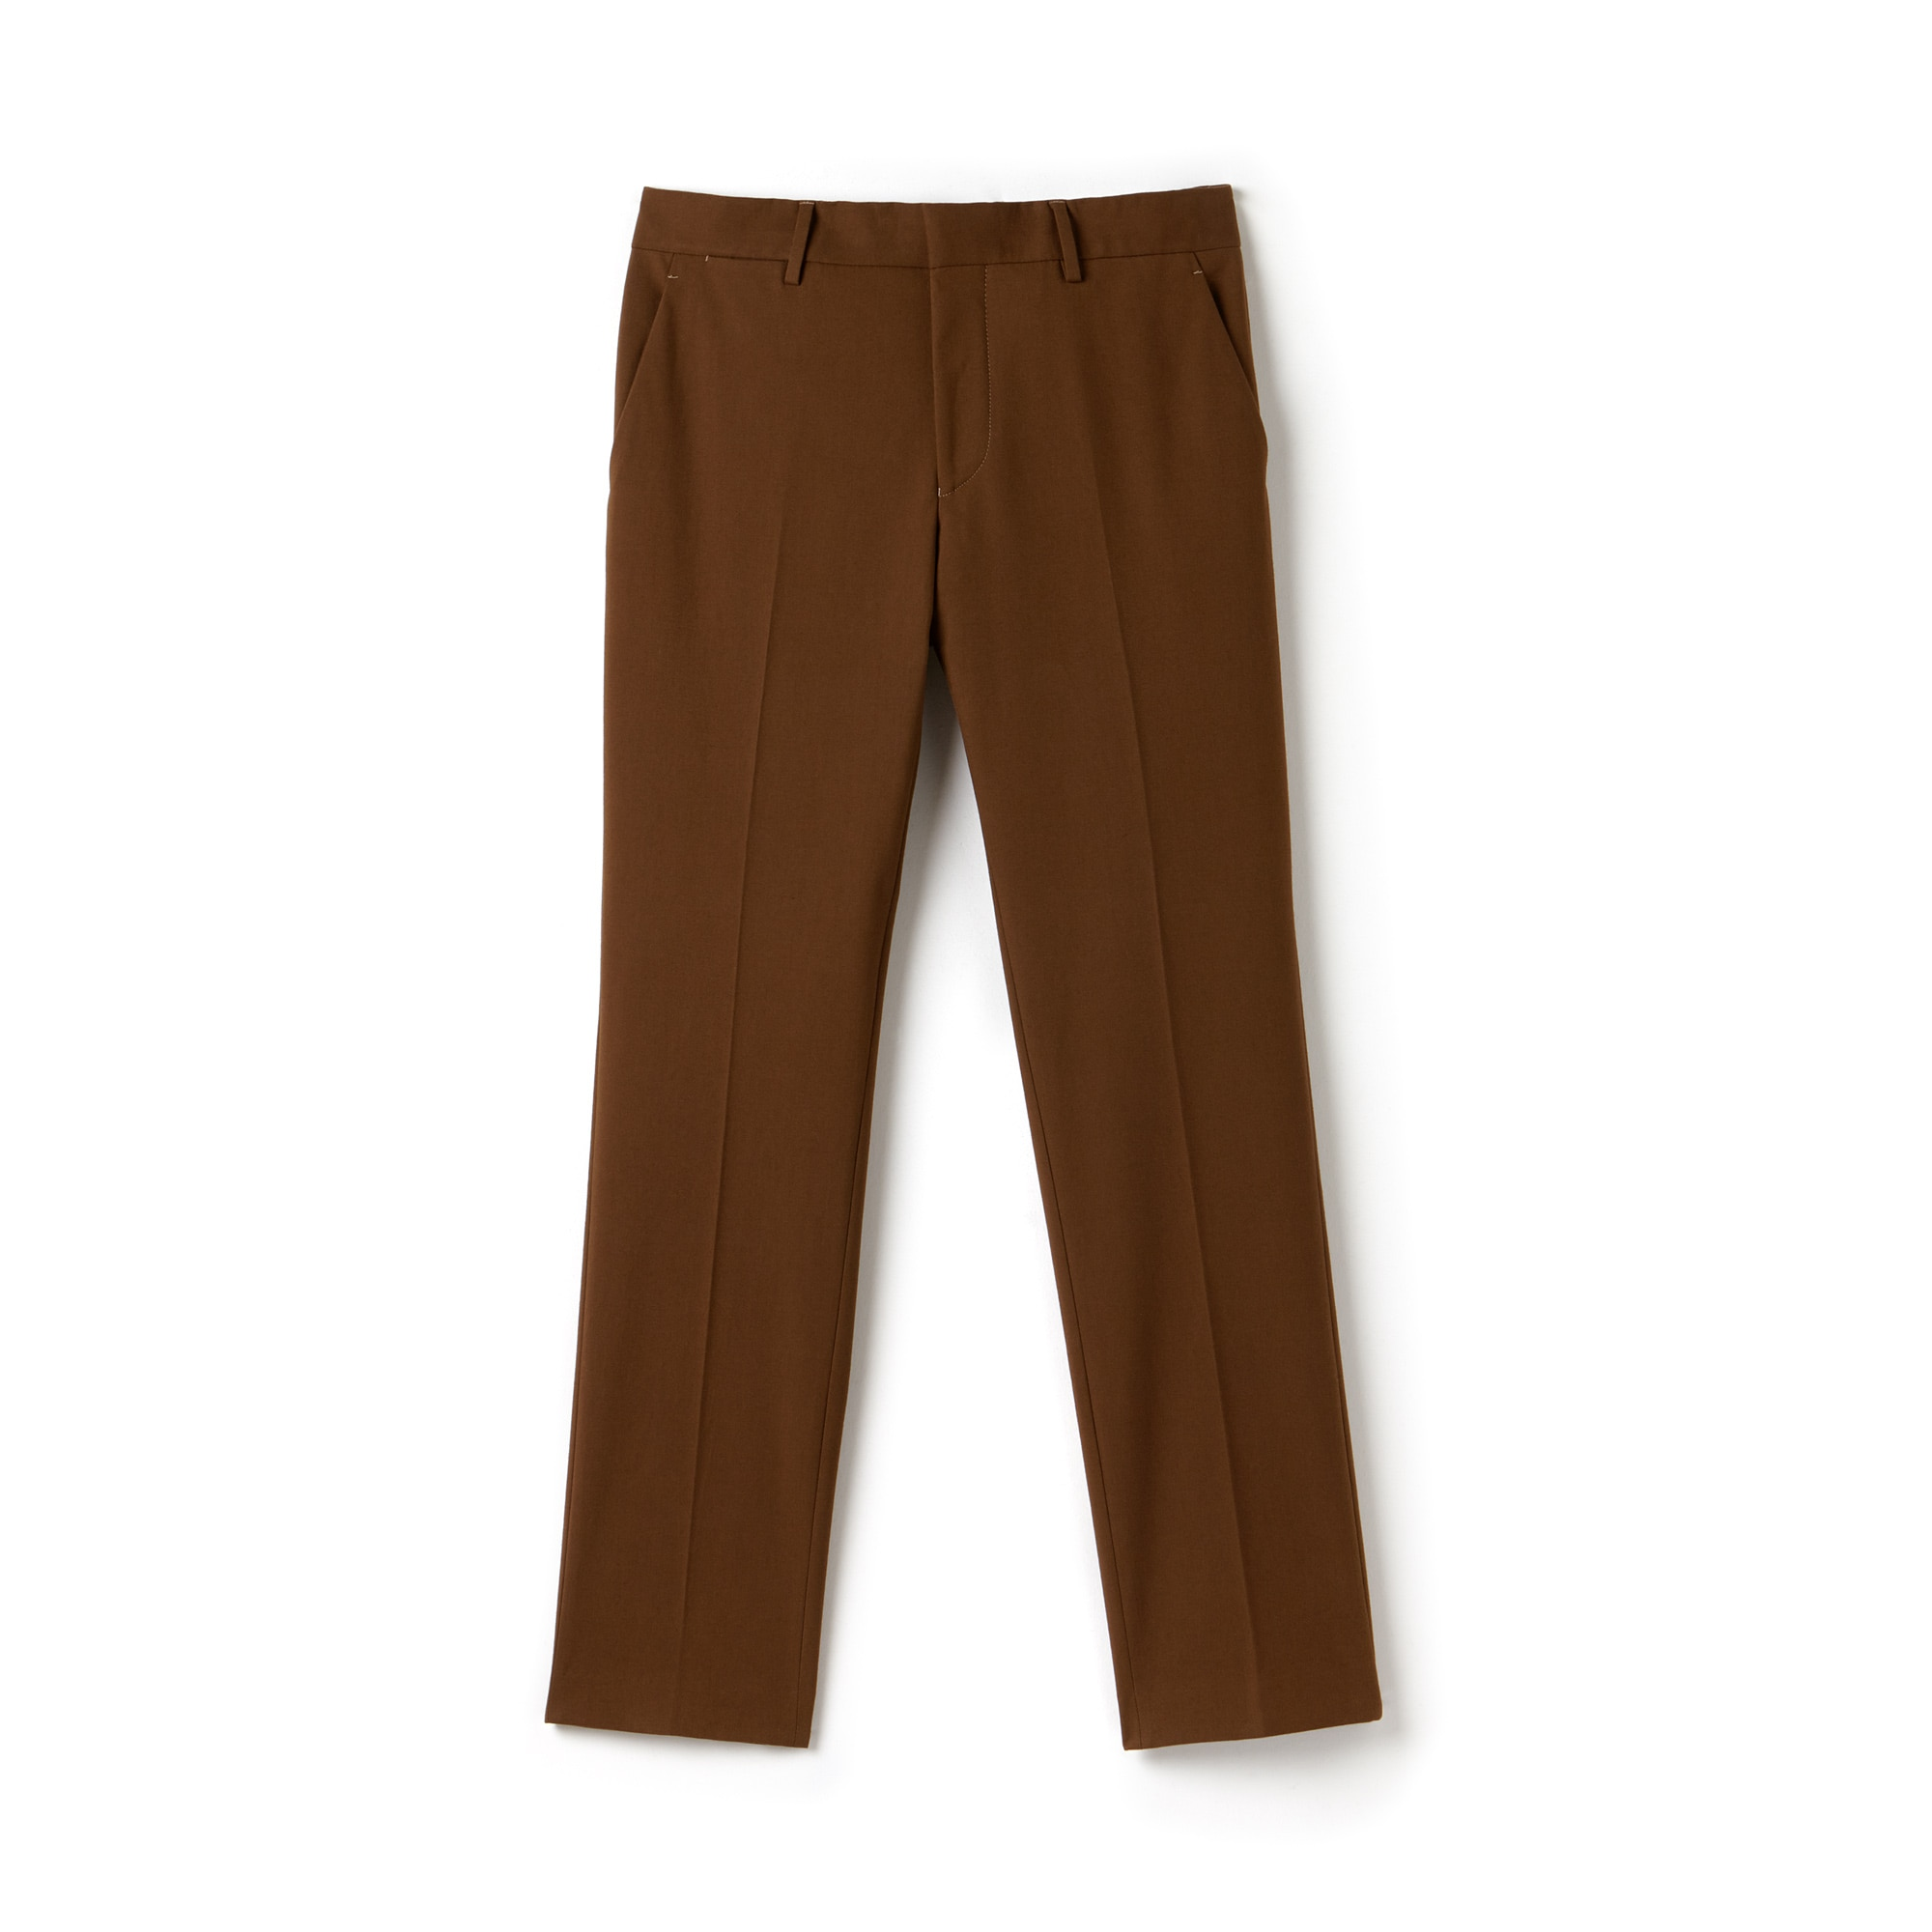 Men's Slim Fit Pleated Stretch Gabardine Chino Pants